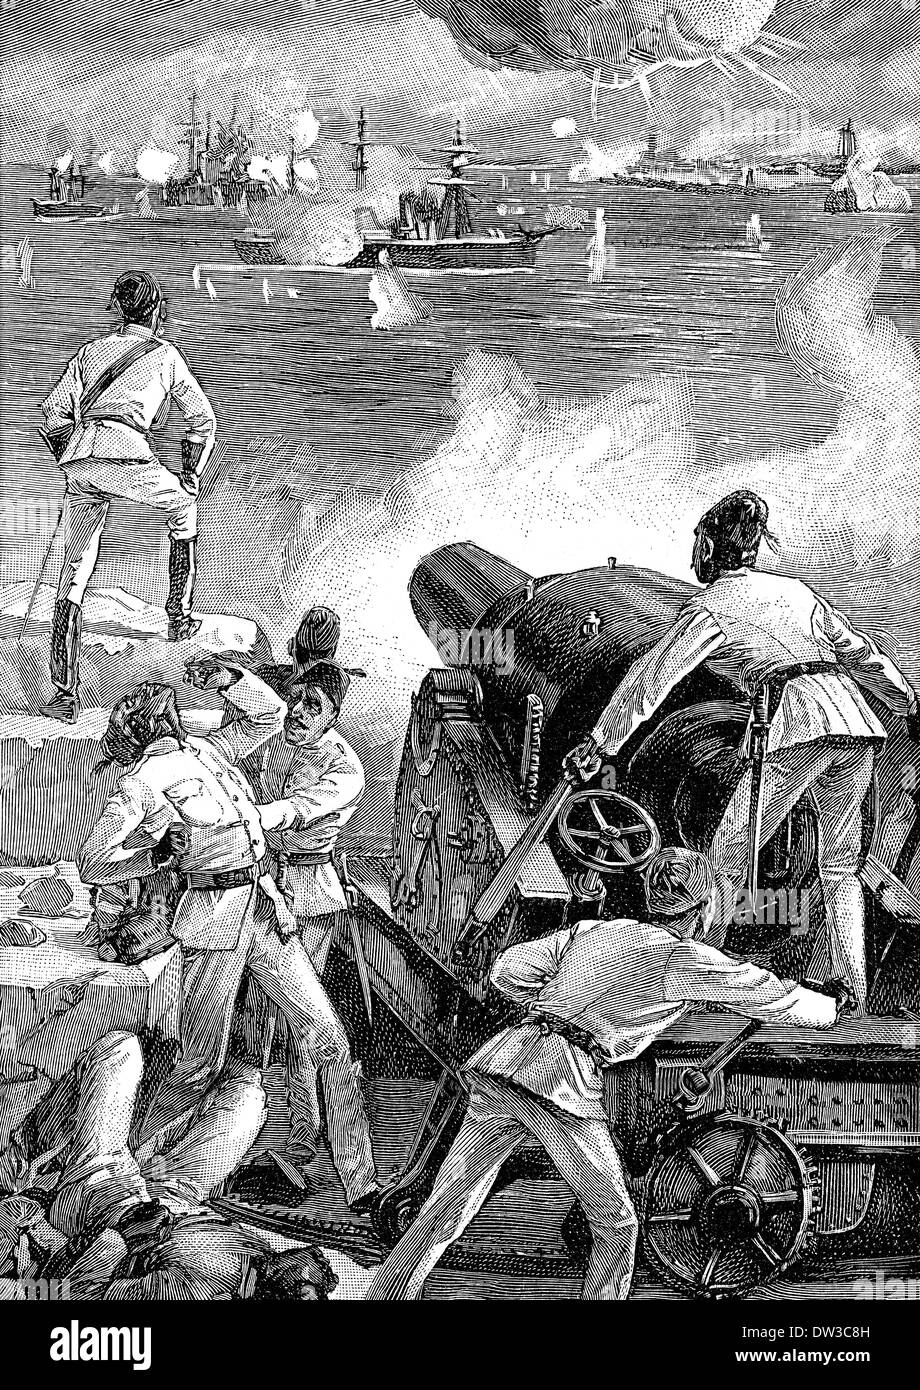 The Bombardment of Alexandria, in 1882, by the British Mediterranean Fleet - Stock Image